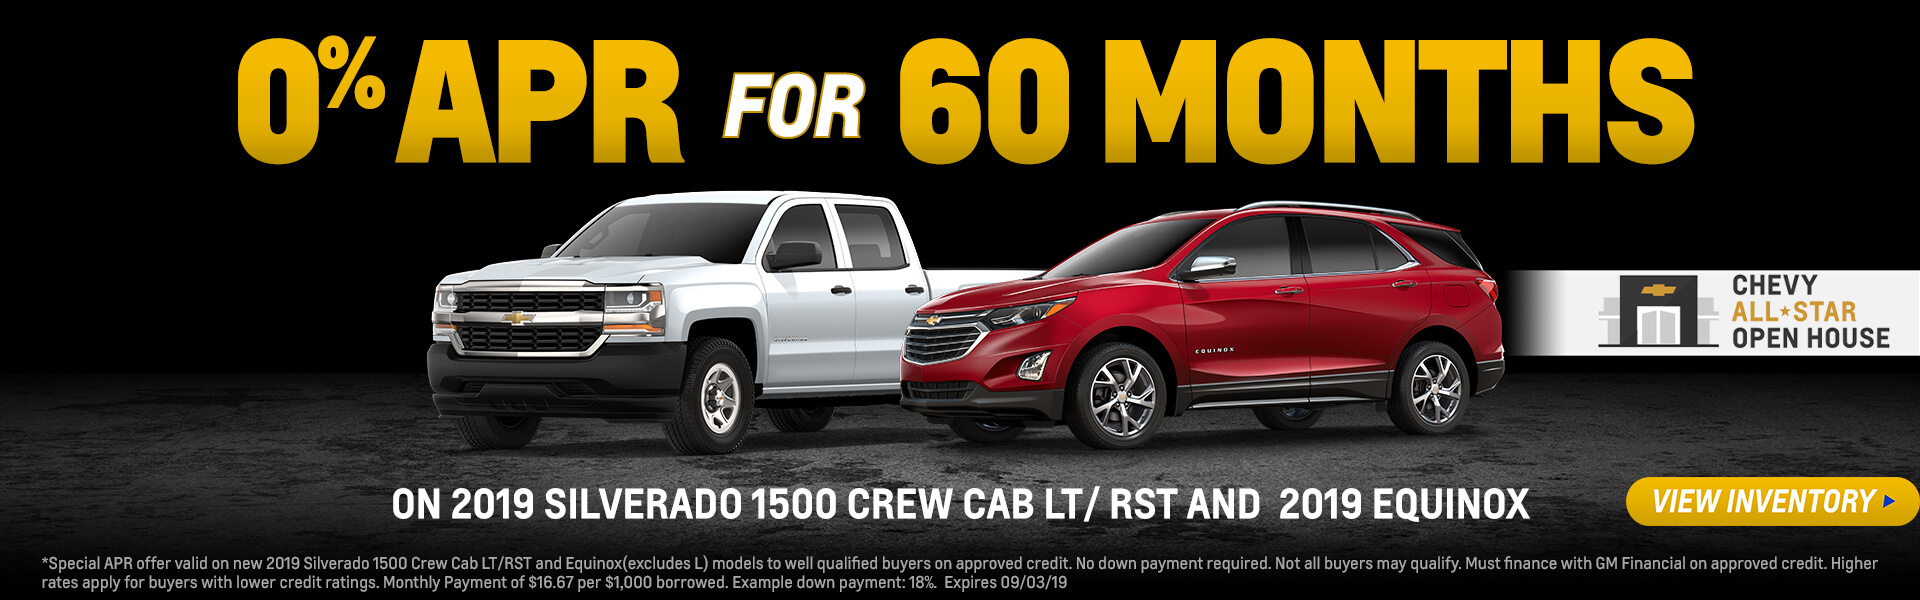 0% APR Financing for 60 months on